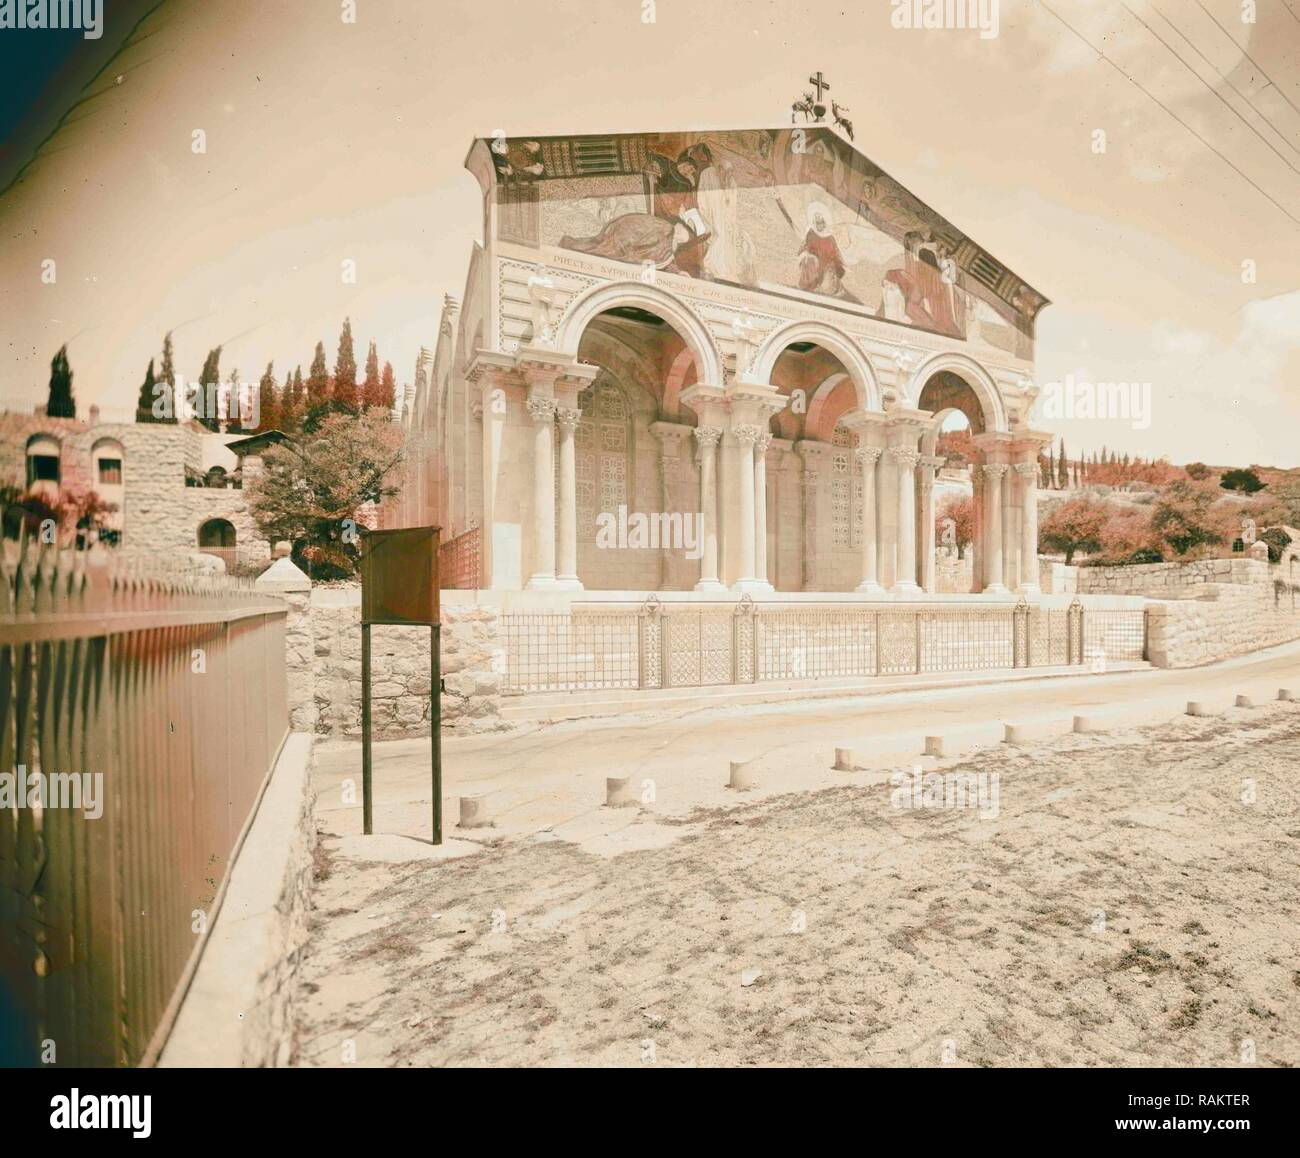 Byzantine style fa ade of the Gethsemane Basilica, Church of All Nations or Church of the Agony 1934, Jerusalem reimagined - Stock Image